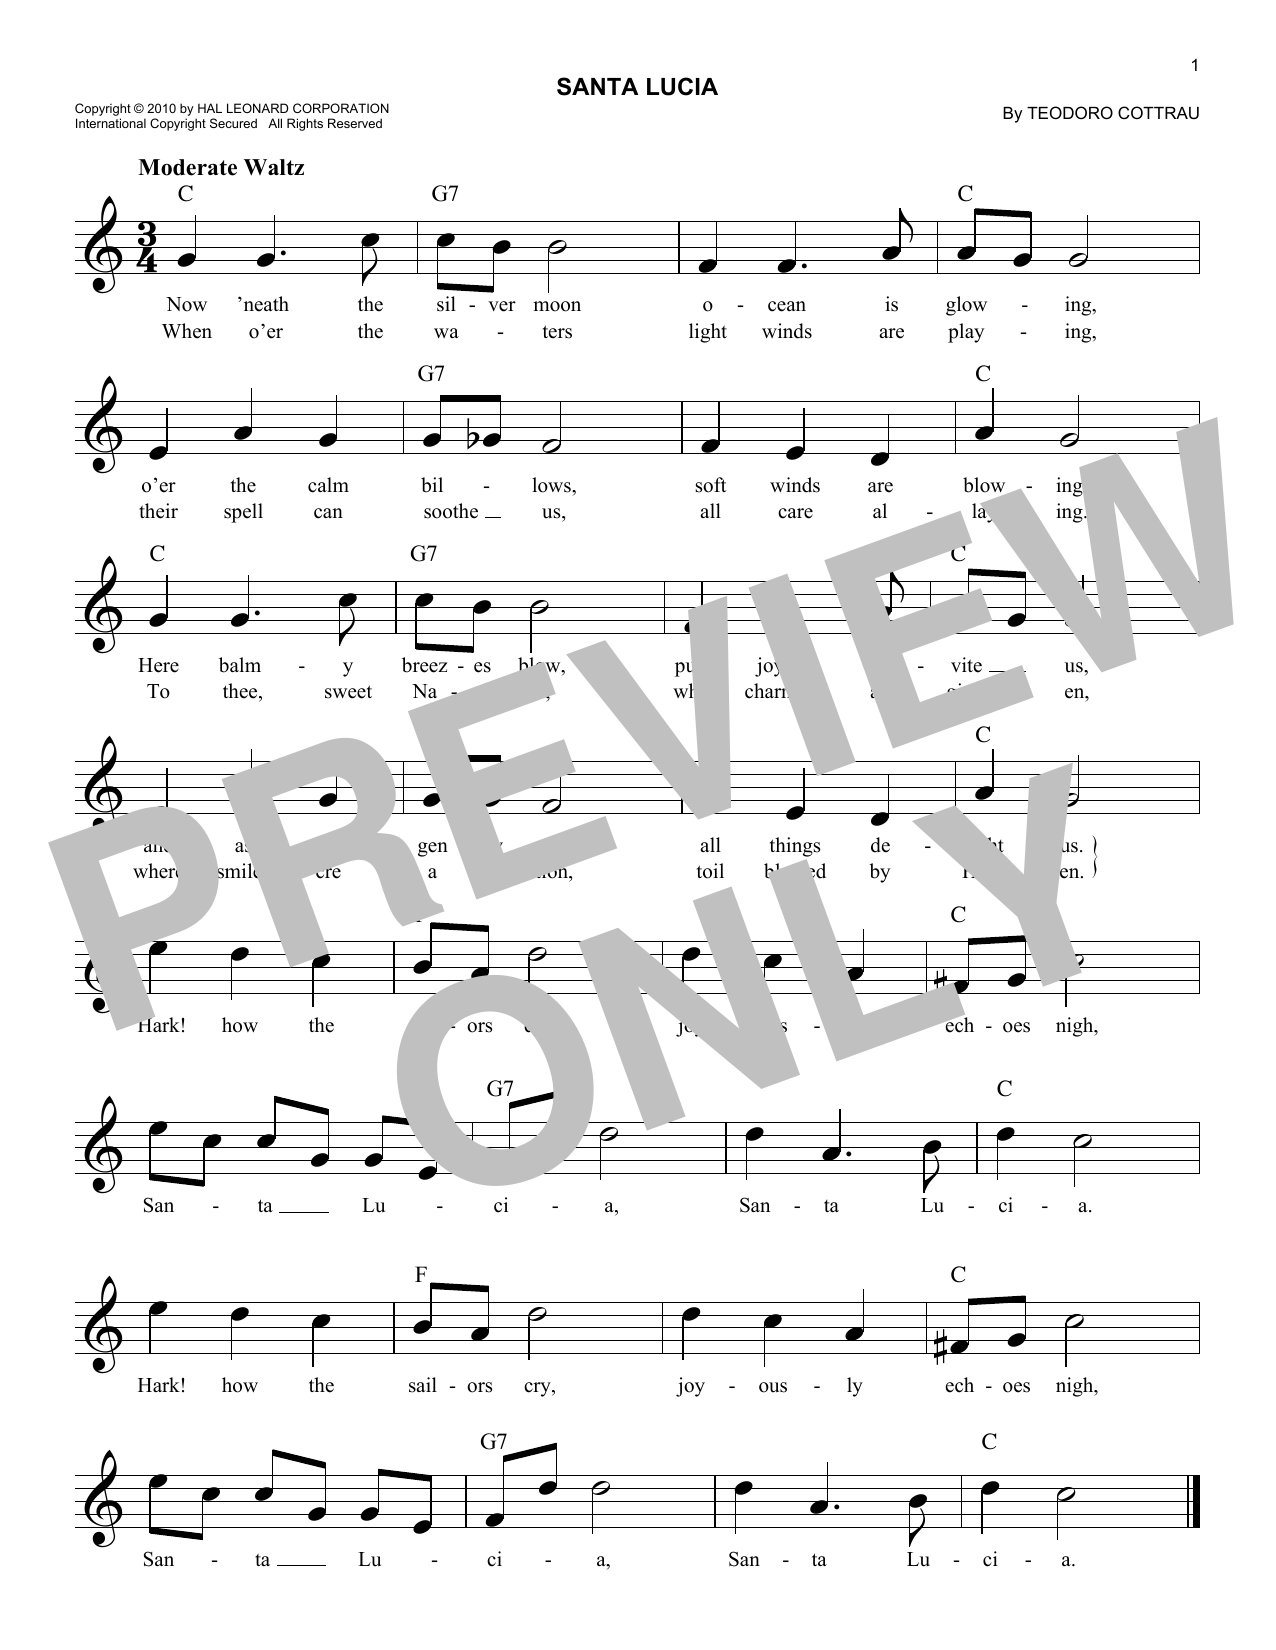 Santa lucia chords by teodoro cottrau melody line lyrics santa lucia sheet music hexwebz Choice Image